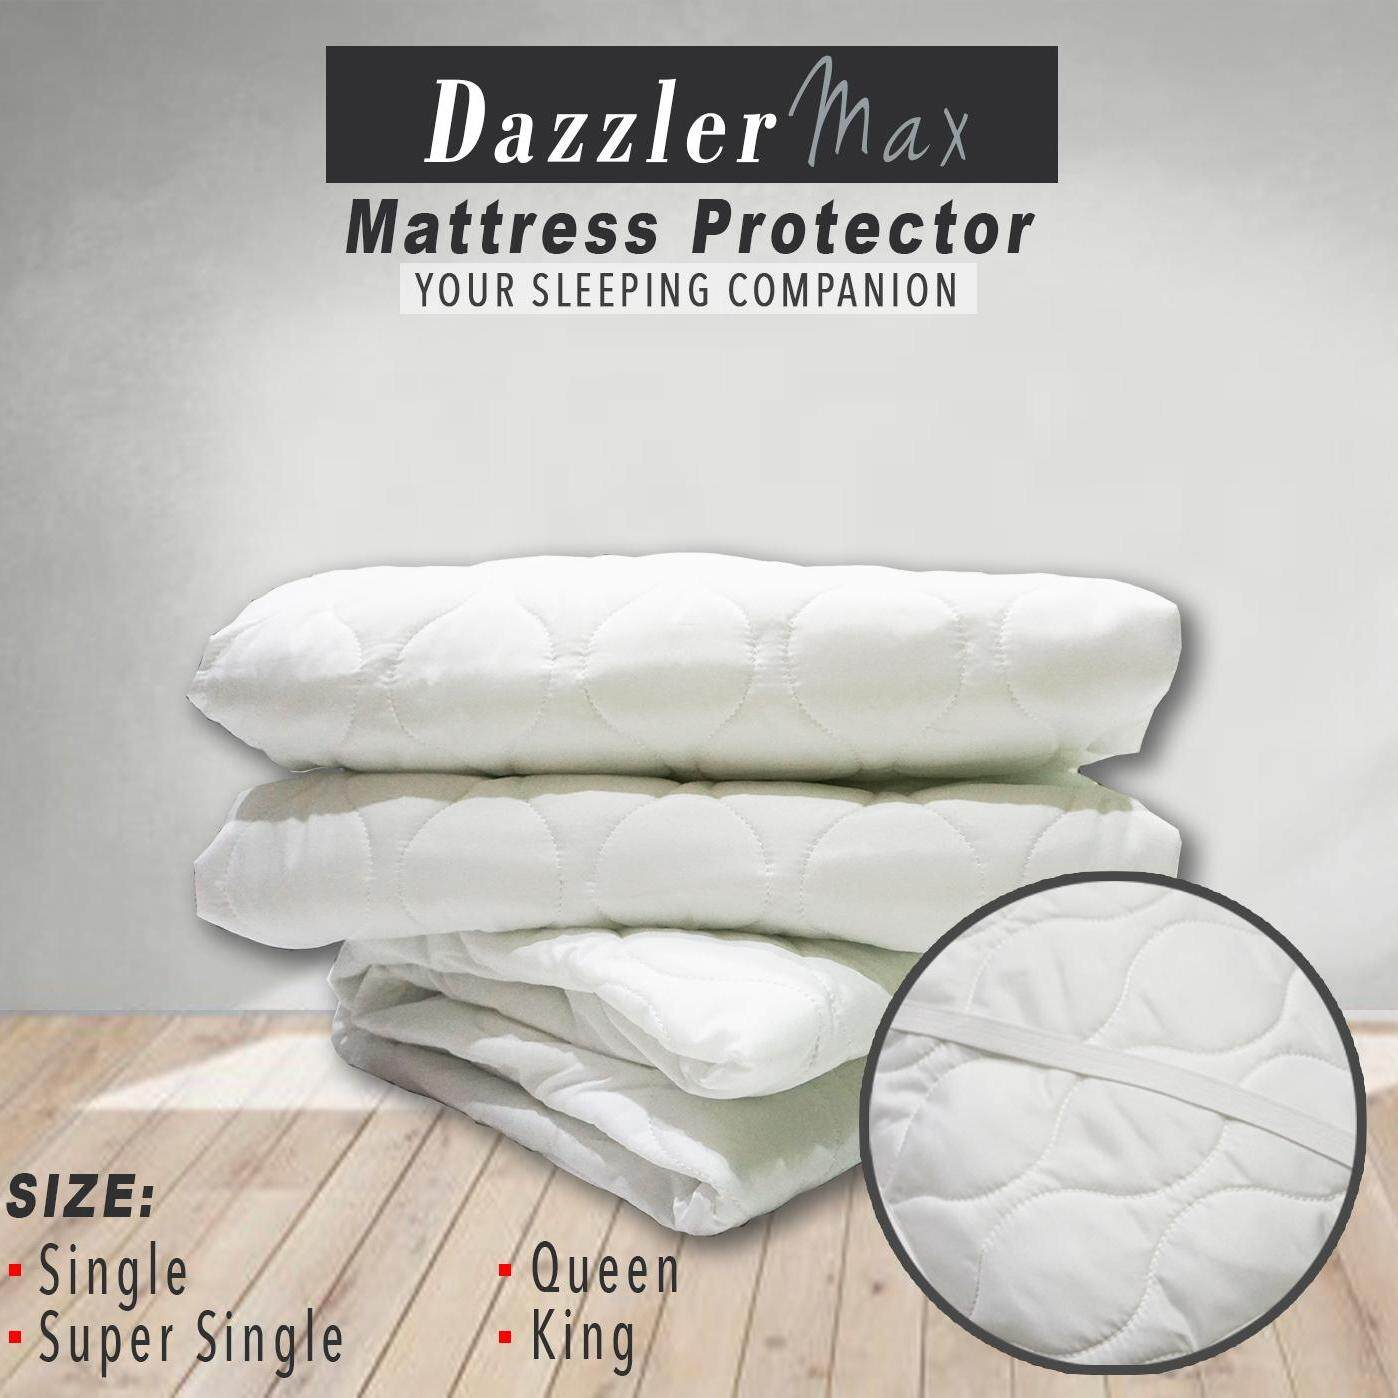 Dazzler Max Elastic Soft Comfortable Mattress Protector (Four strips at corner) Fitted Bedding Sheet  Machine Washable  Single  Super Single  Queen  King